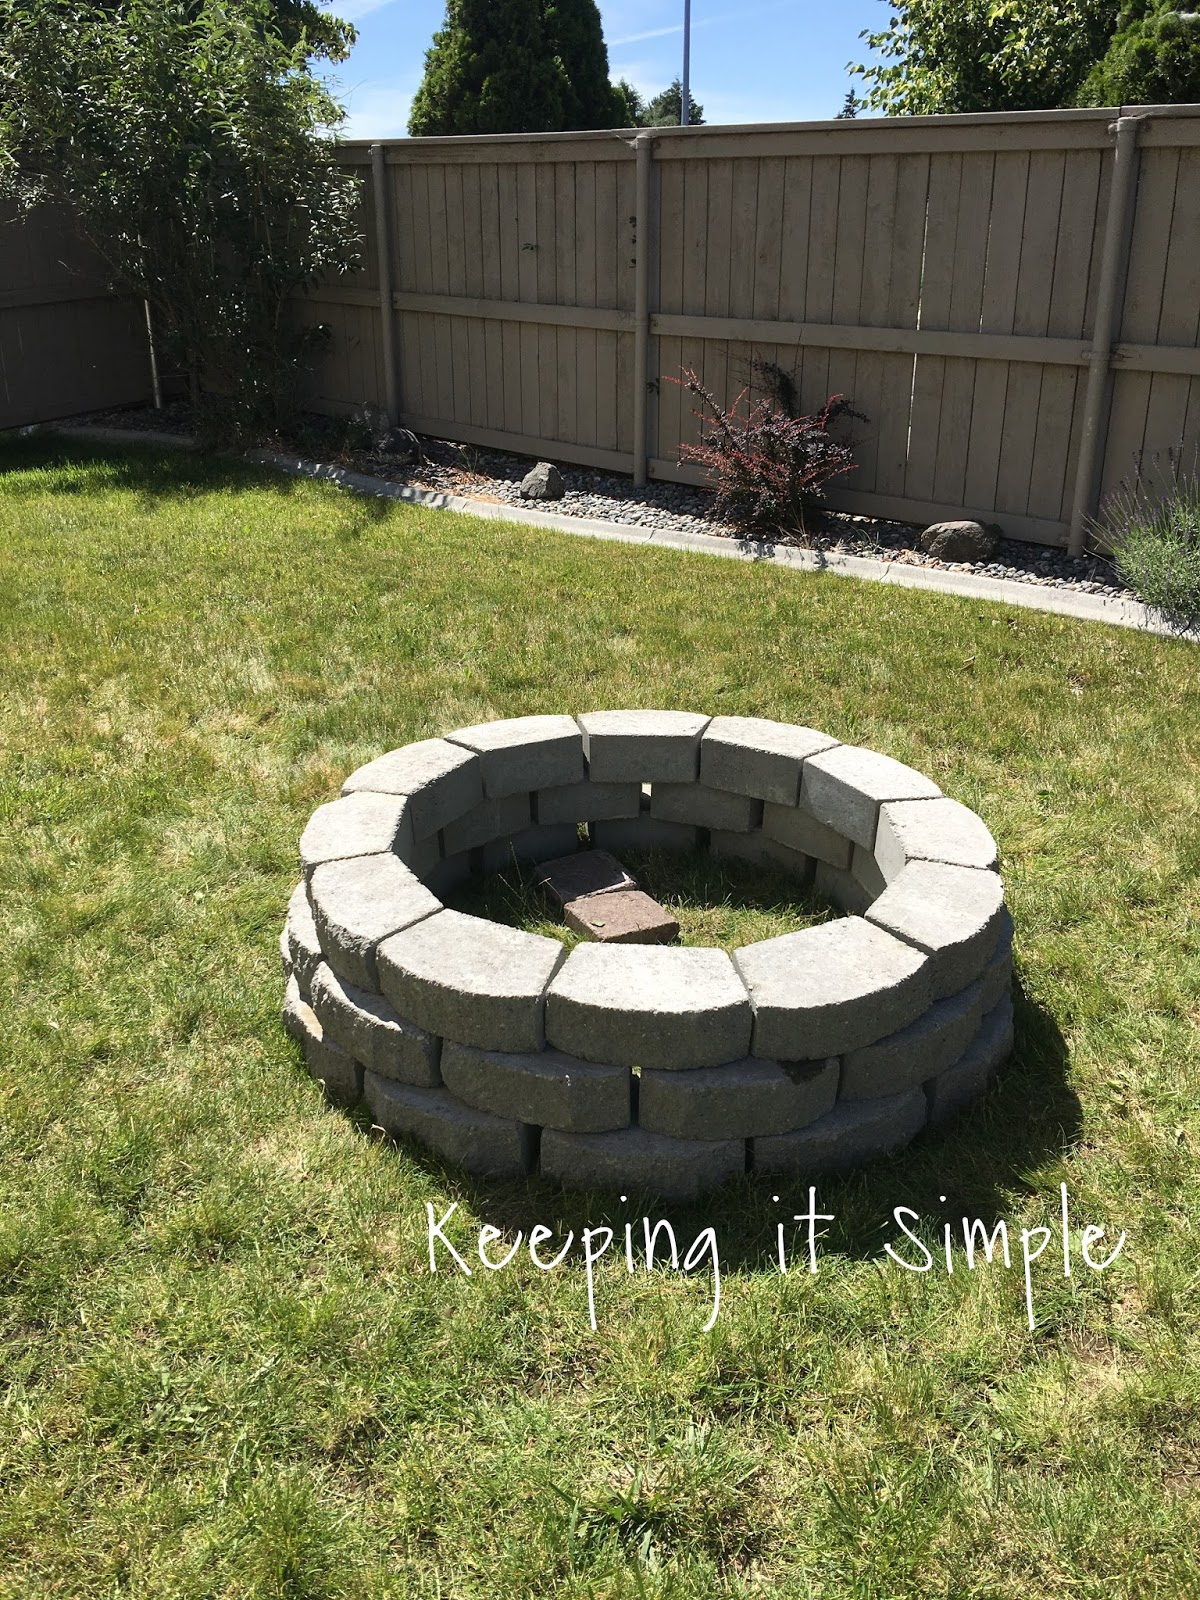 How to Build a DIY Fire Pit for ly $60 Keeping it Simple Crafts